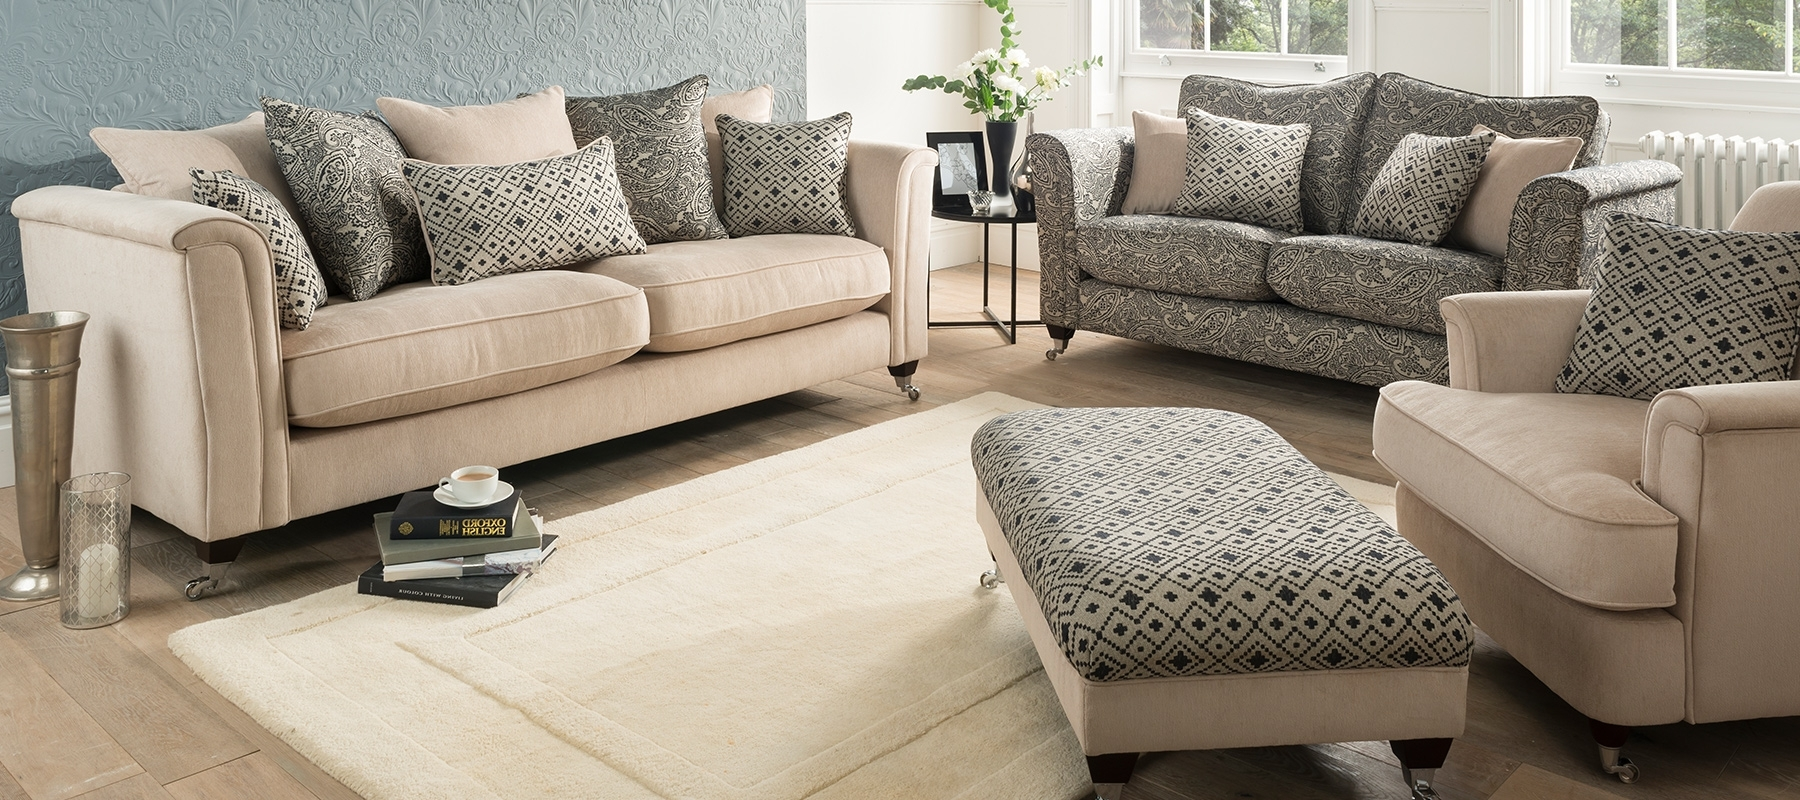 Sofas And Chairs Regarding Current Sofas & Chairs – Cosy Carpets (View 8 of 15)